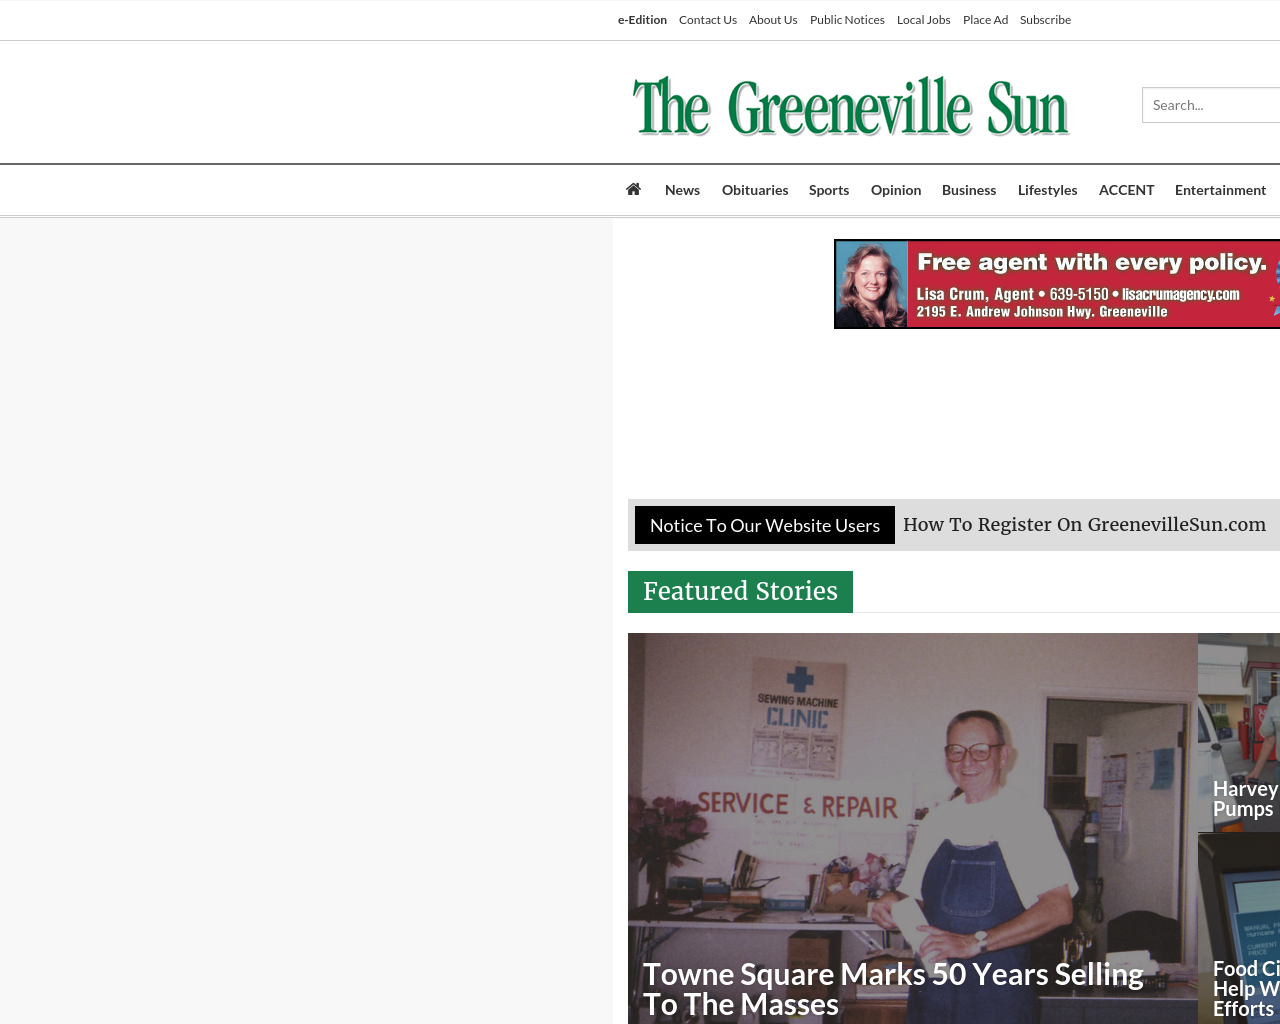 The-Greeneville-Sun-Advertising-Reviews-Pricing